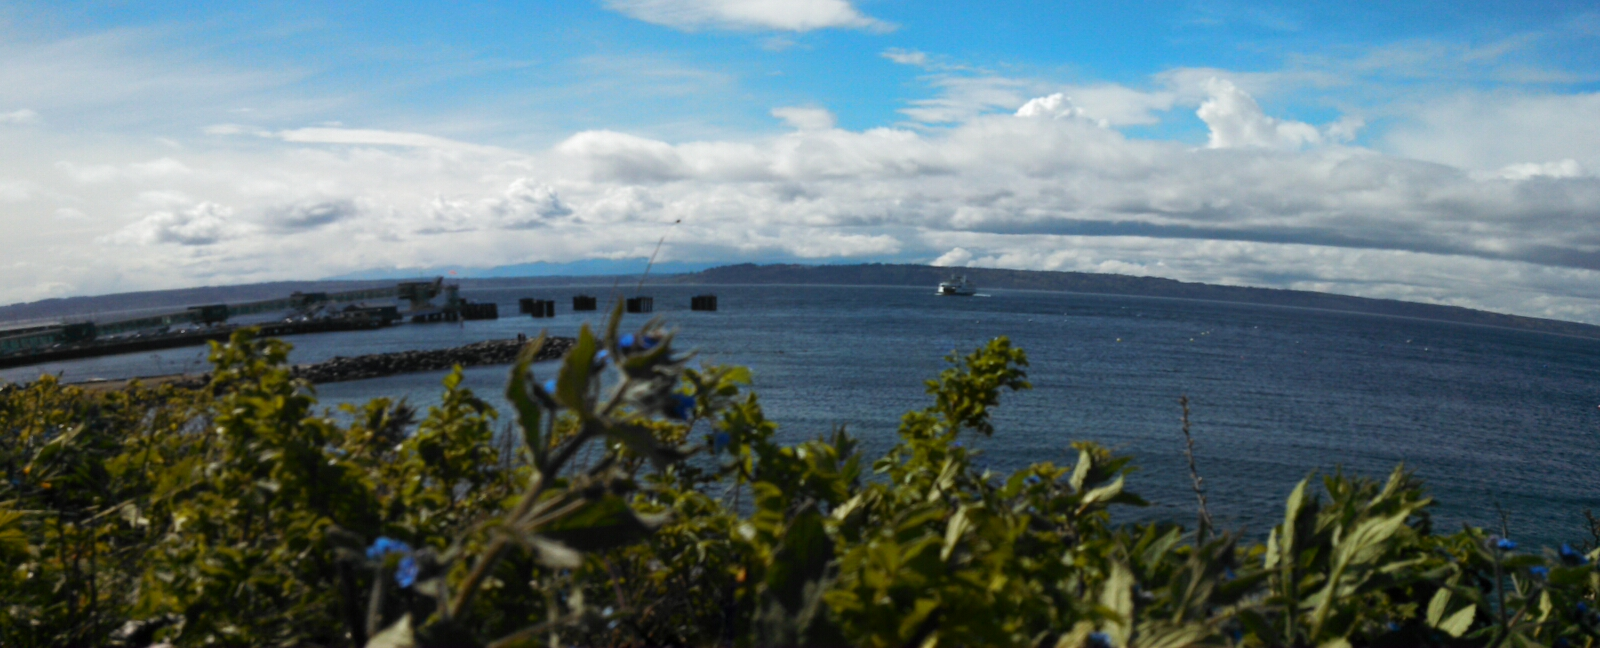 Panoramic  view of Edmonds dock into Puget Sound